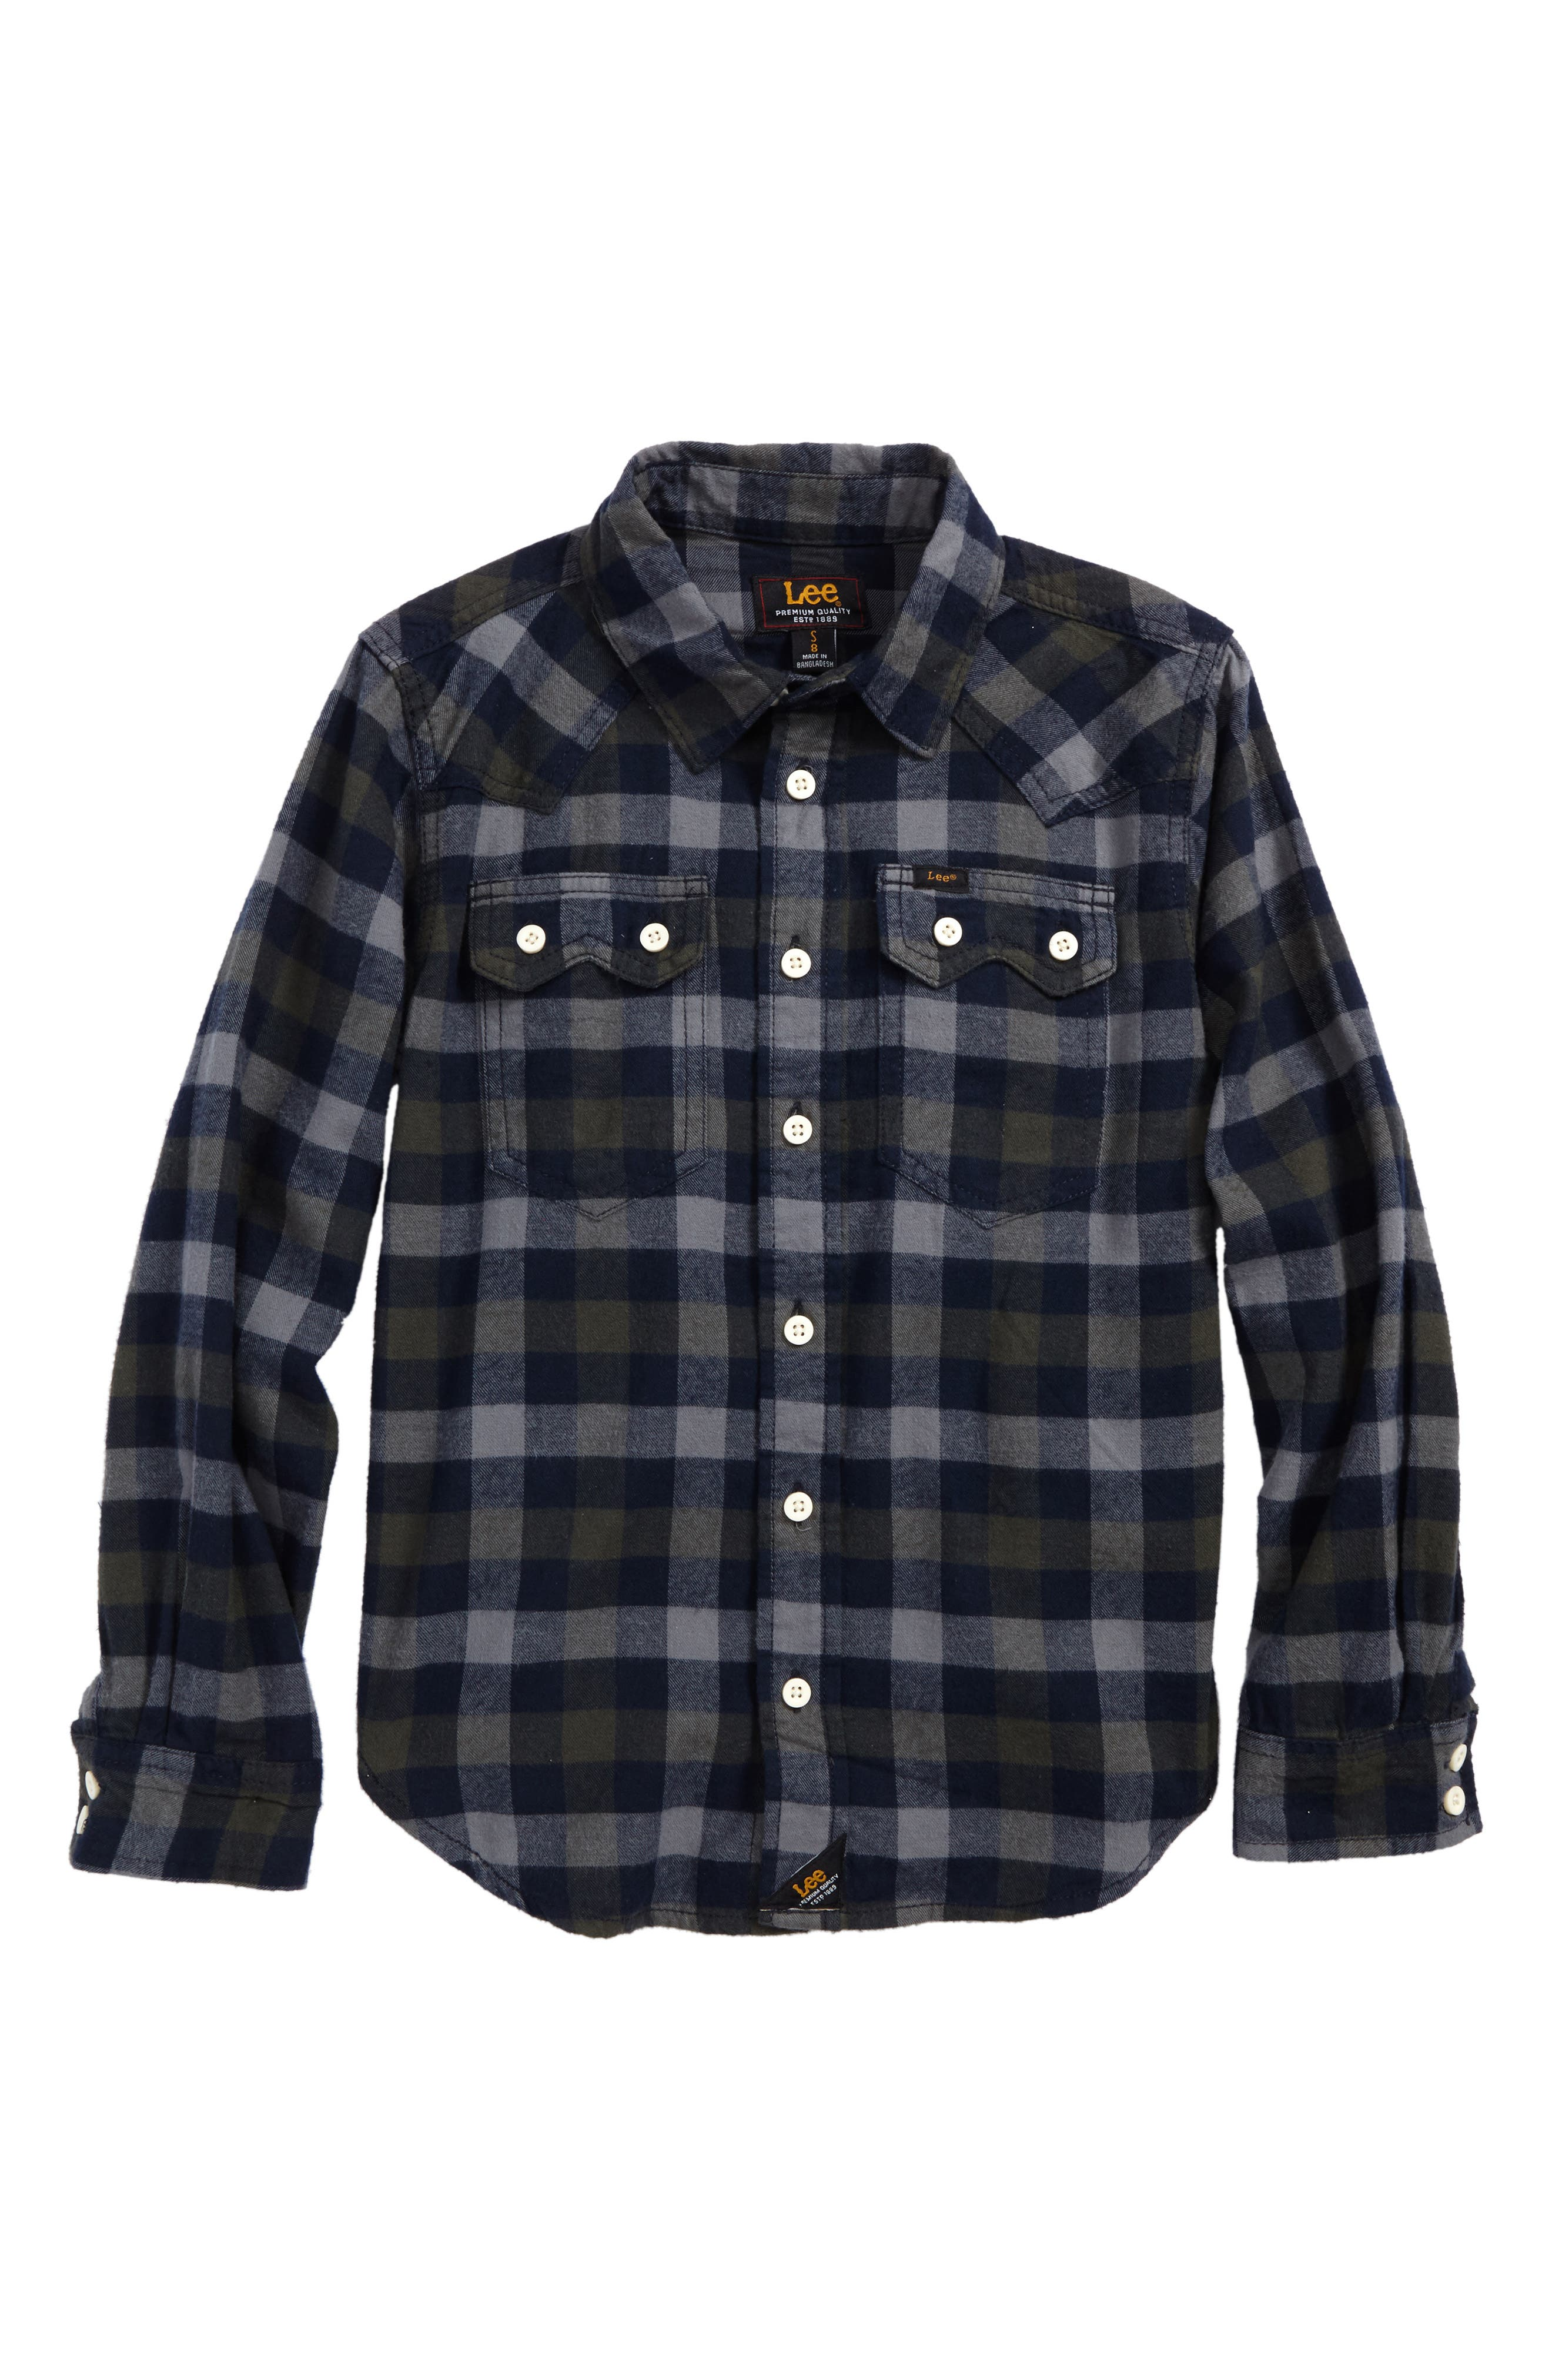 Alternate Image 1 Selected - Lee Plaid Woven Shirt (Big Boys)